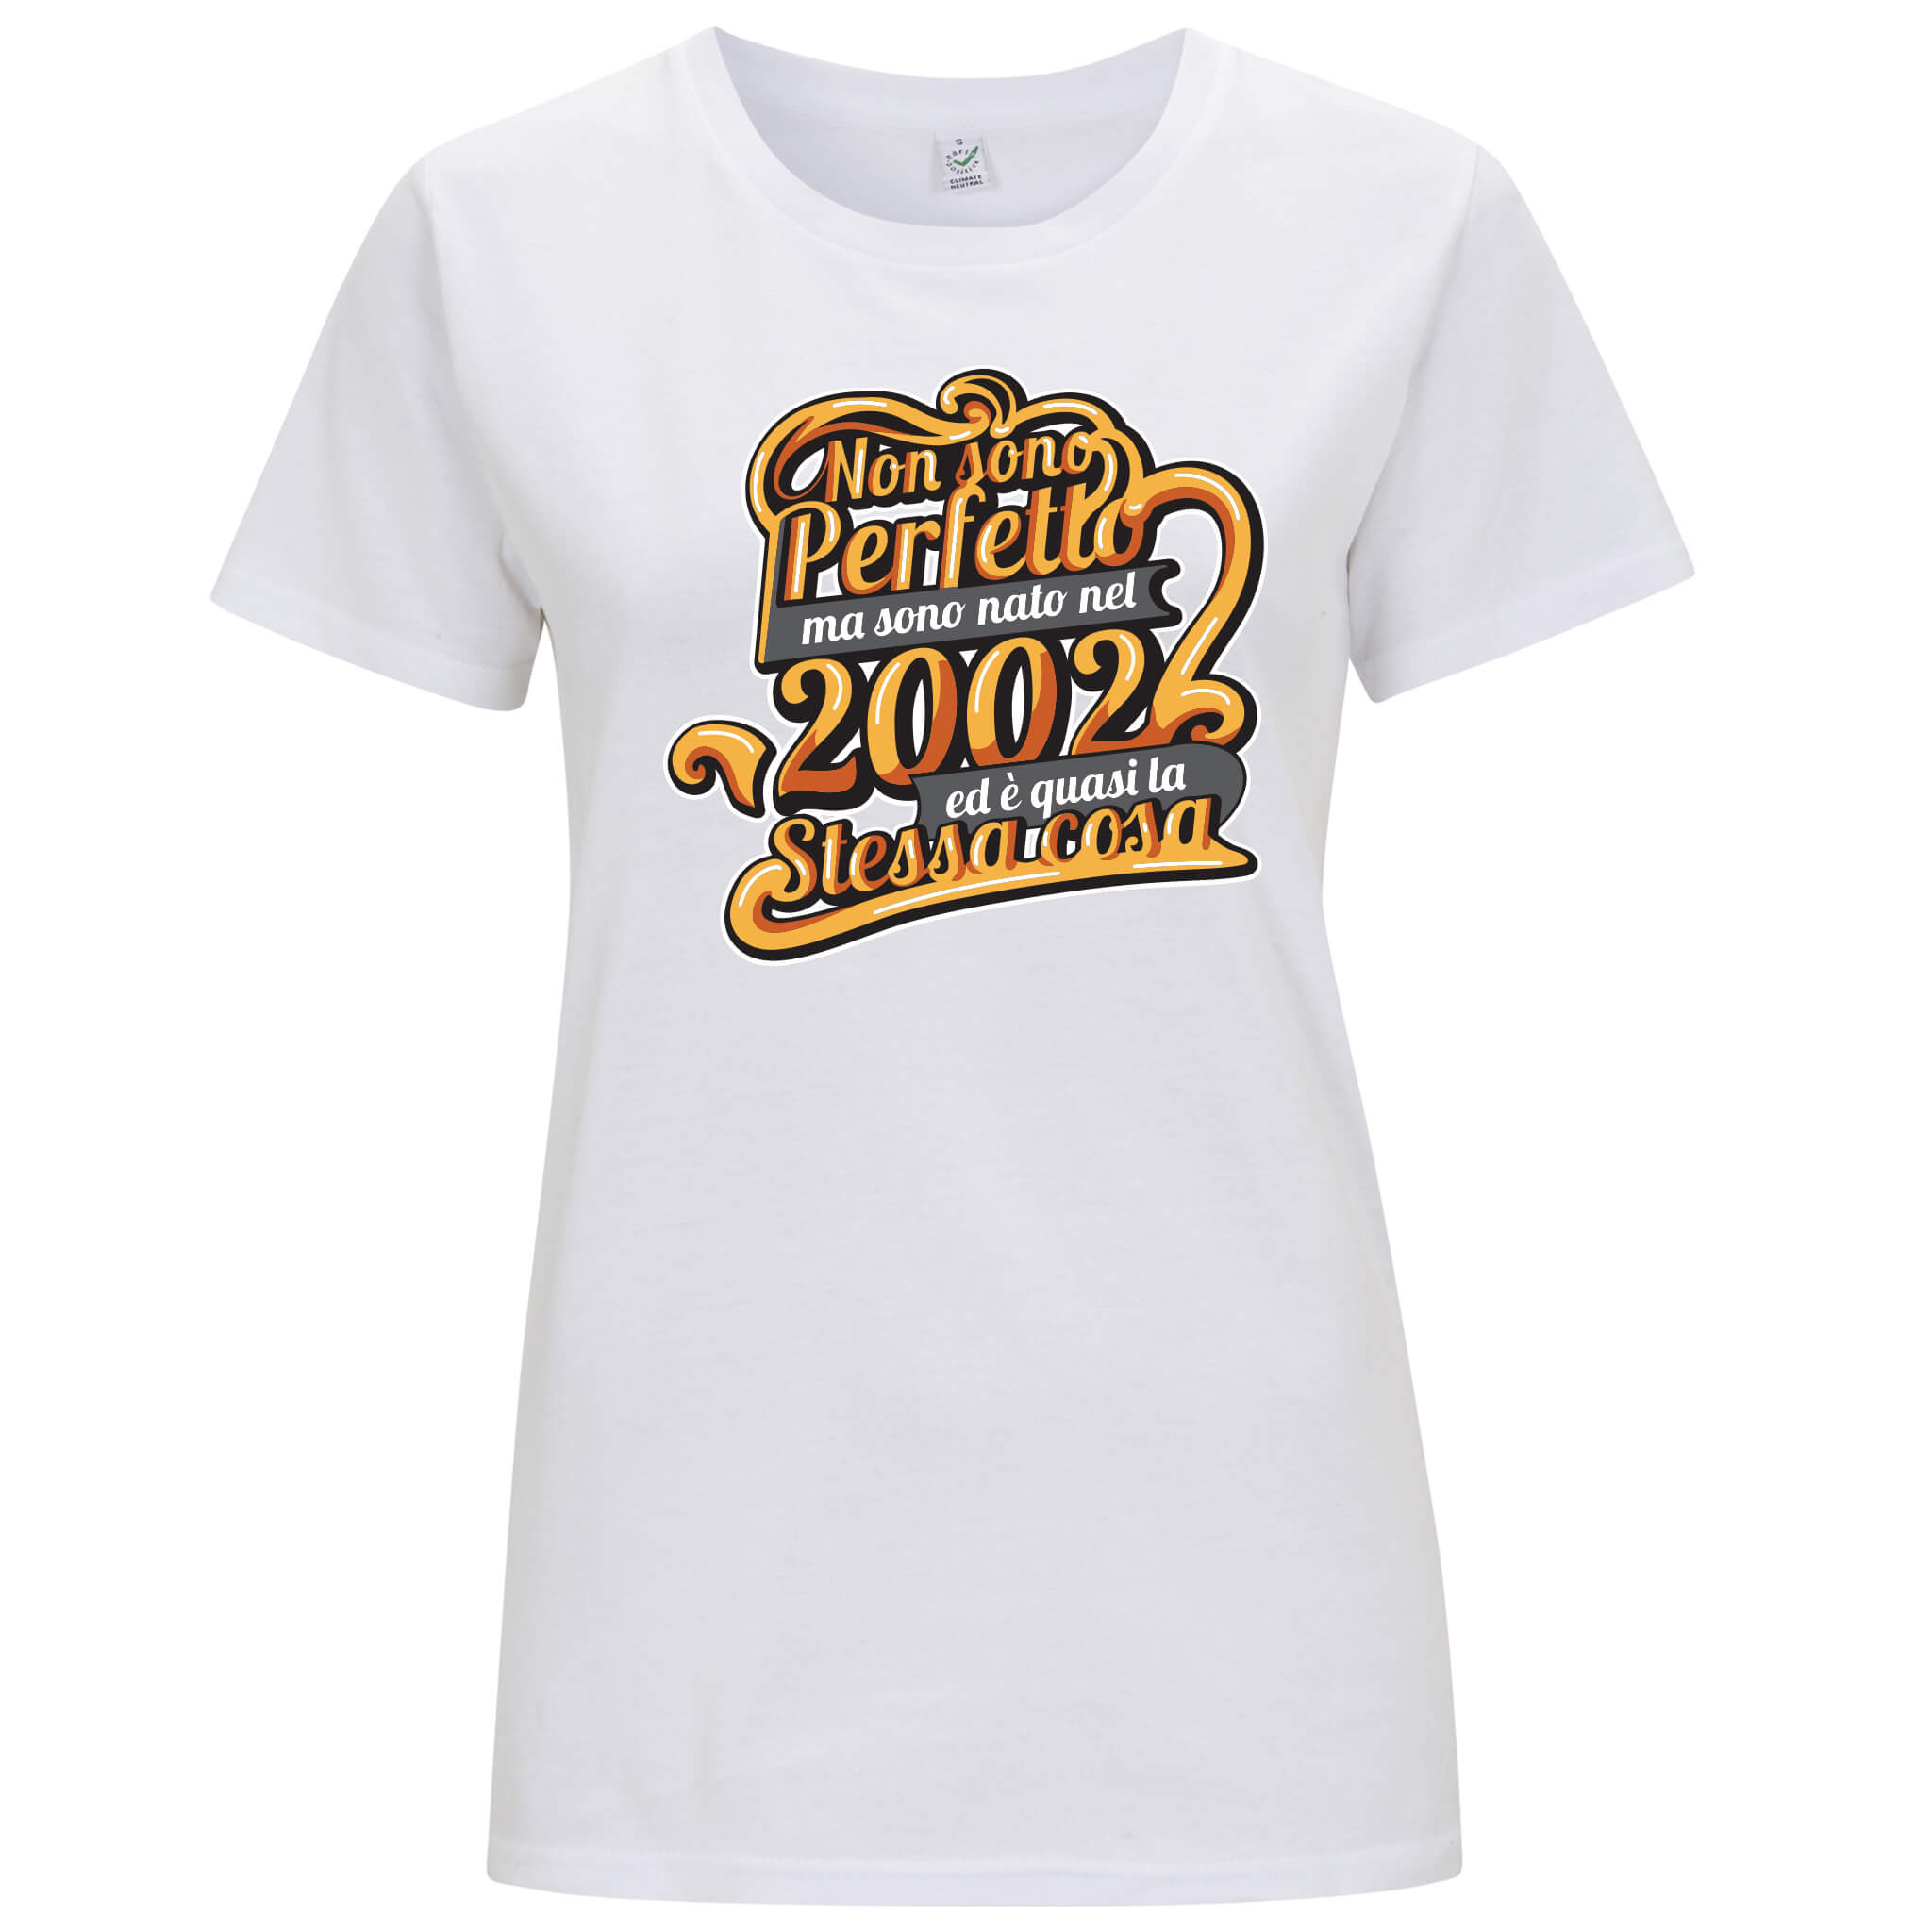 """Nato nel 2002"" - T-shirt Donna - T-Shirt by Fol The Brand"